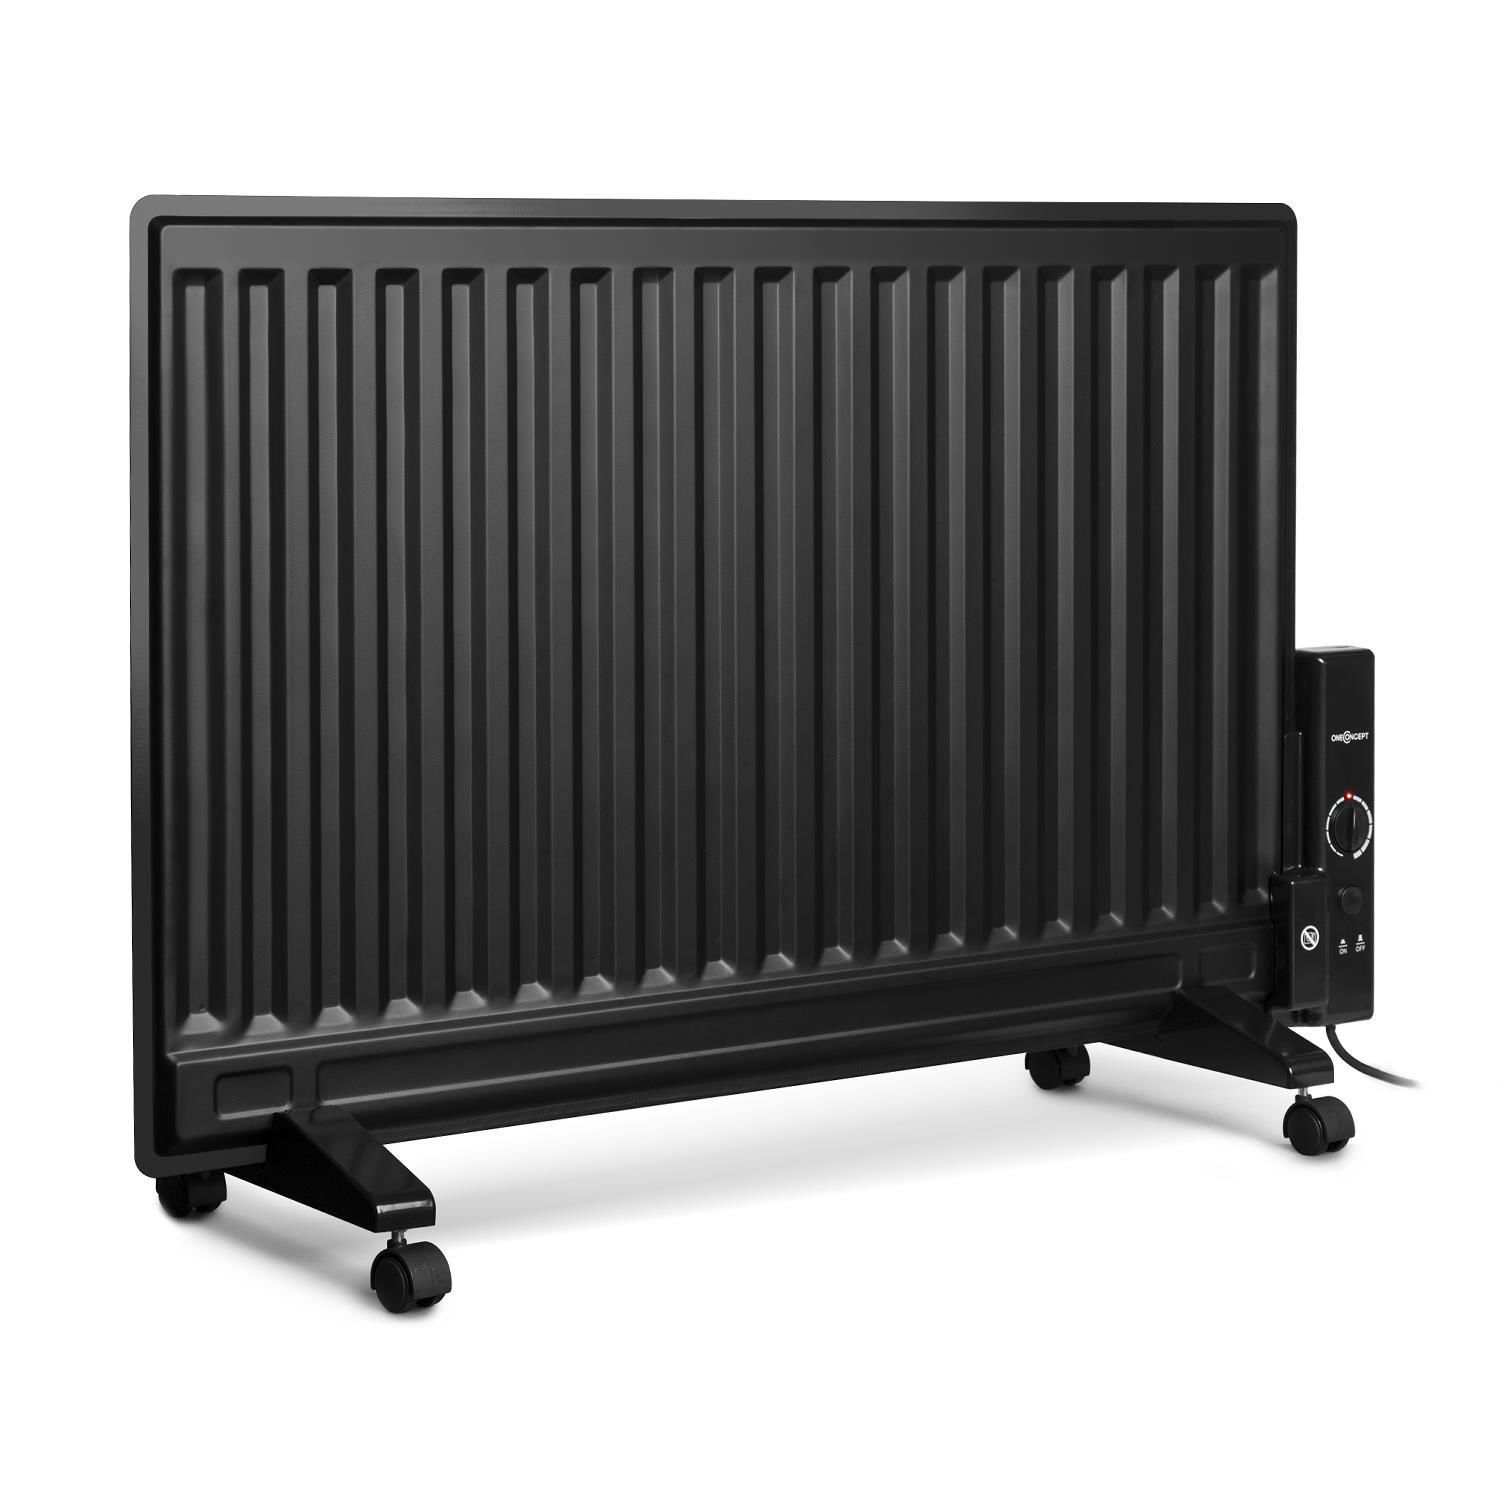 radiateur mobile inertie fabulous with radiateur mobile inertie great radiateur inertie. Black Bedroom Furniture Sets. Home Design Ideas